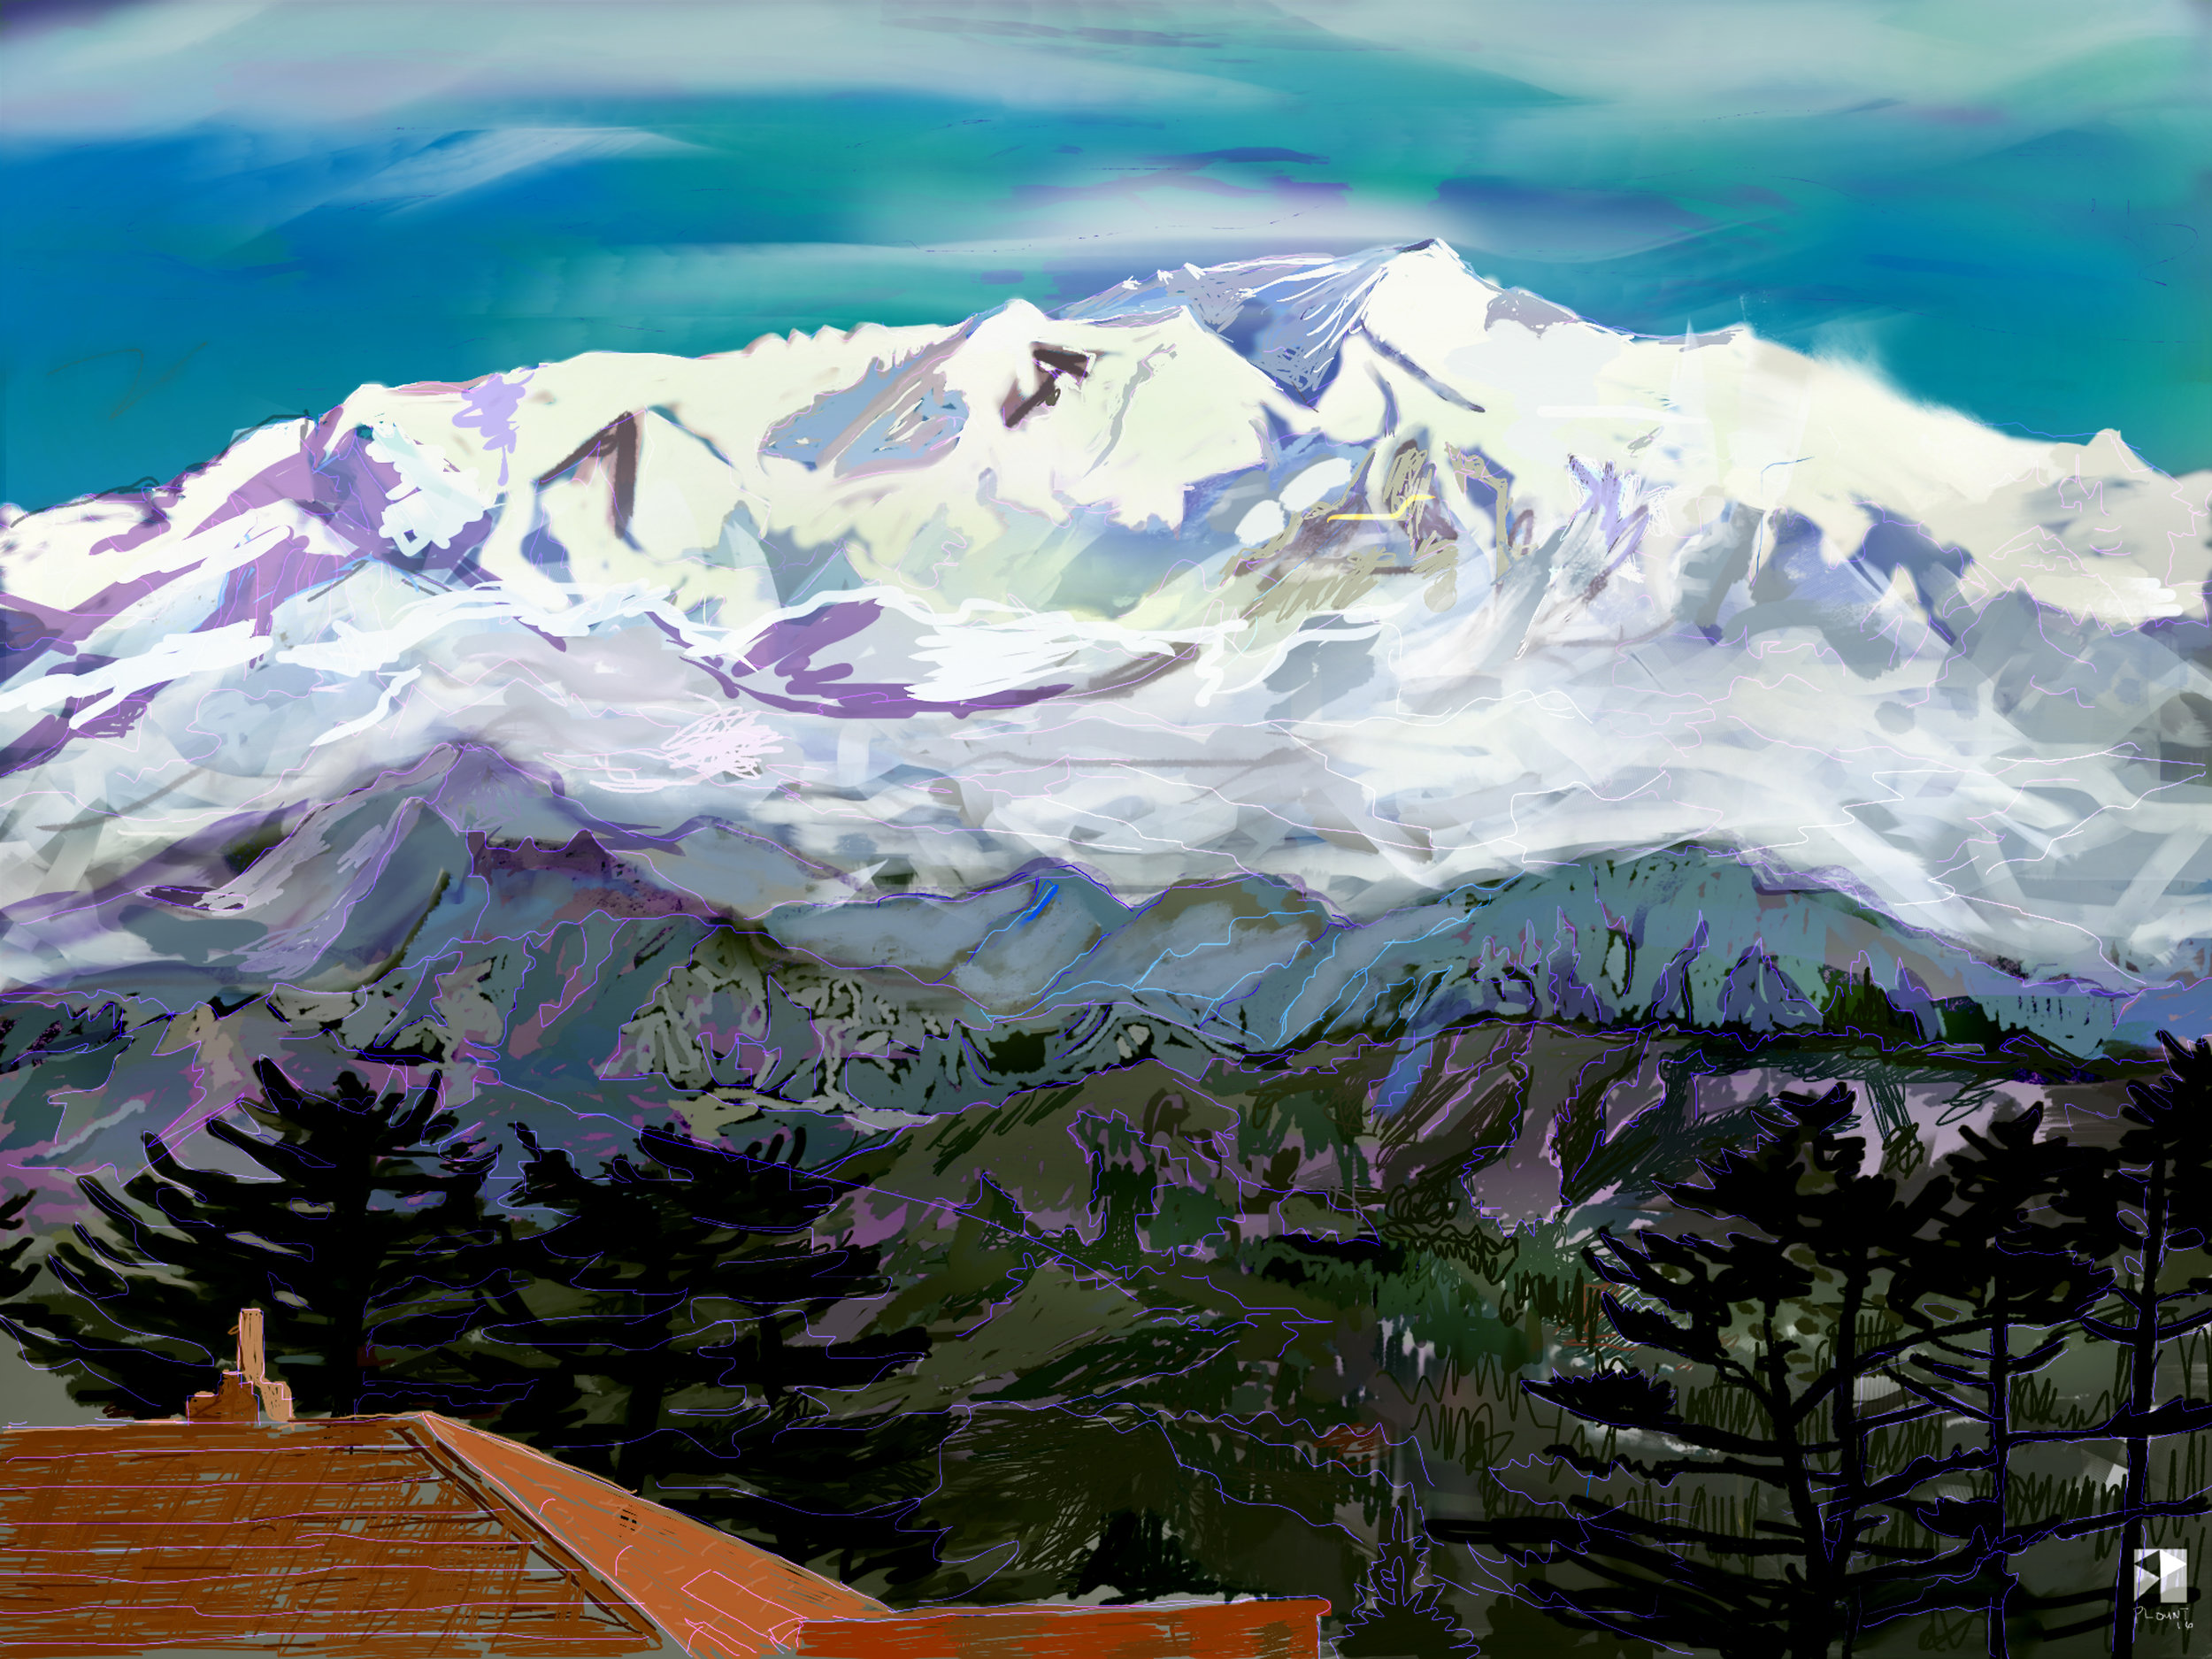 """Kanjunjungha from Sandhakphu,West Bengal, India, Bharat   Electronics Painting, iPad, Procreate, Pencil 53, Photoshop. © 2016 dimensions variable to 48"""" x 60"""" giclee limited edition prints available contact the artist"""